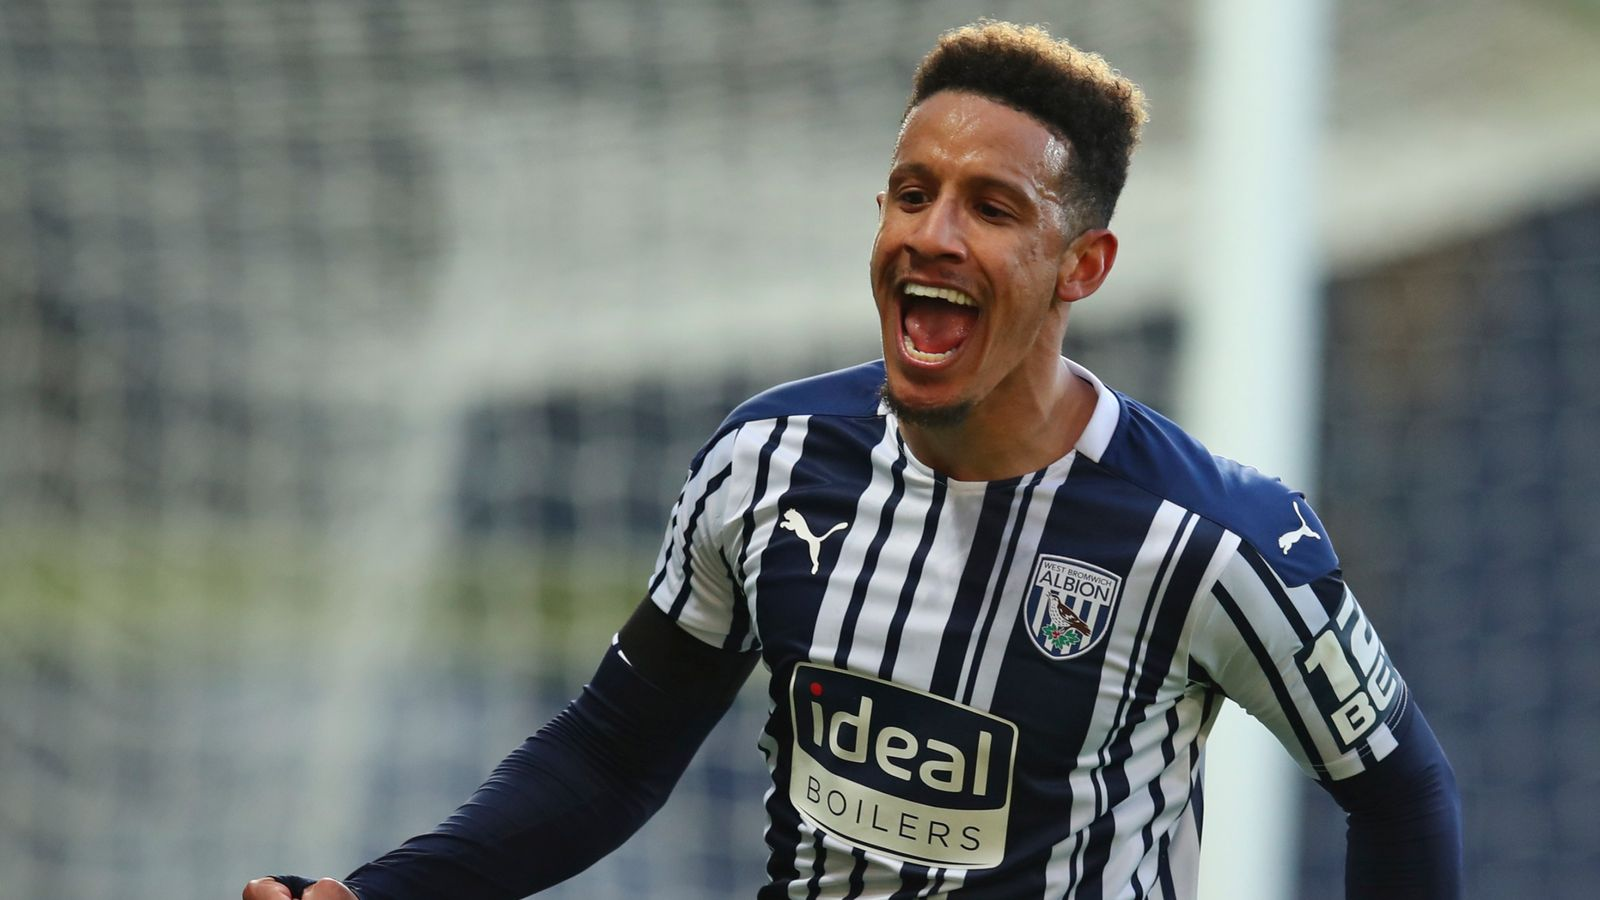 Premier League hits and misses: Could West Brom pull off second Great Escape? | Football News